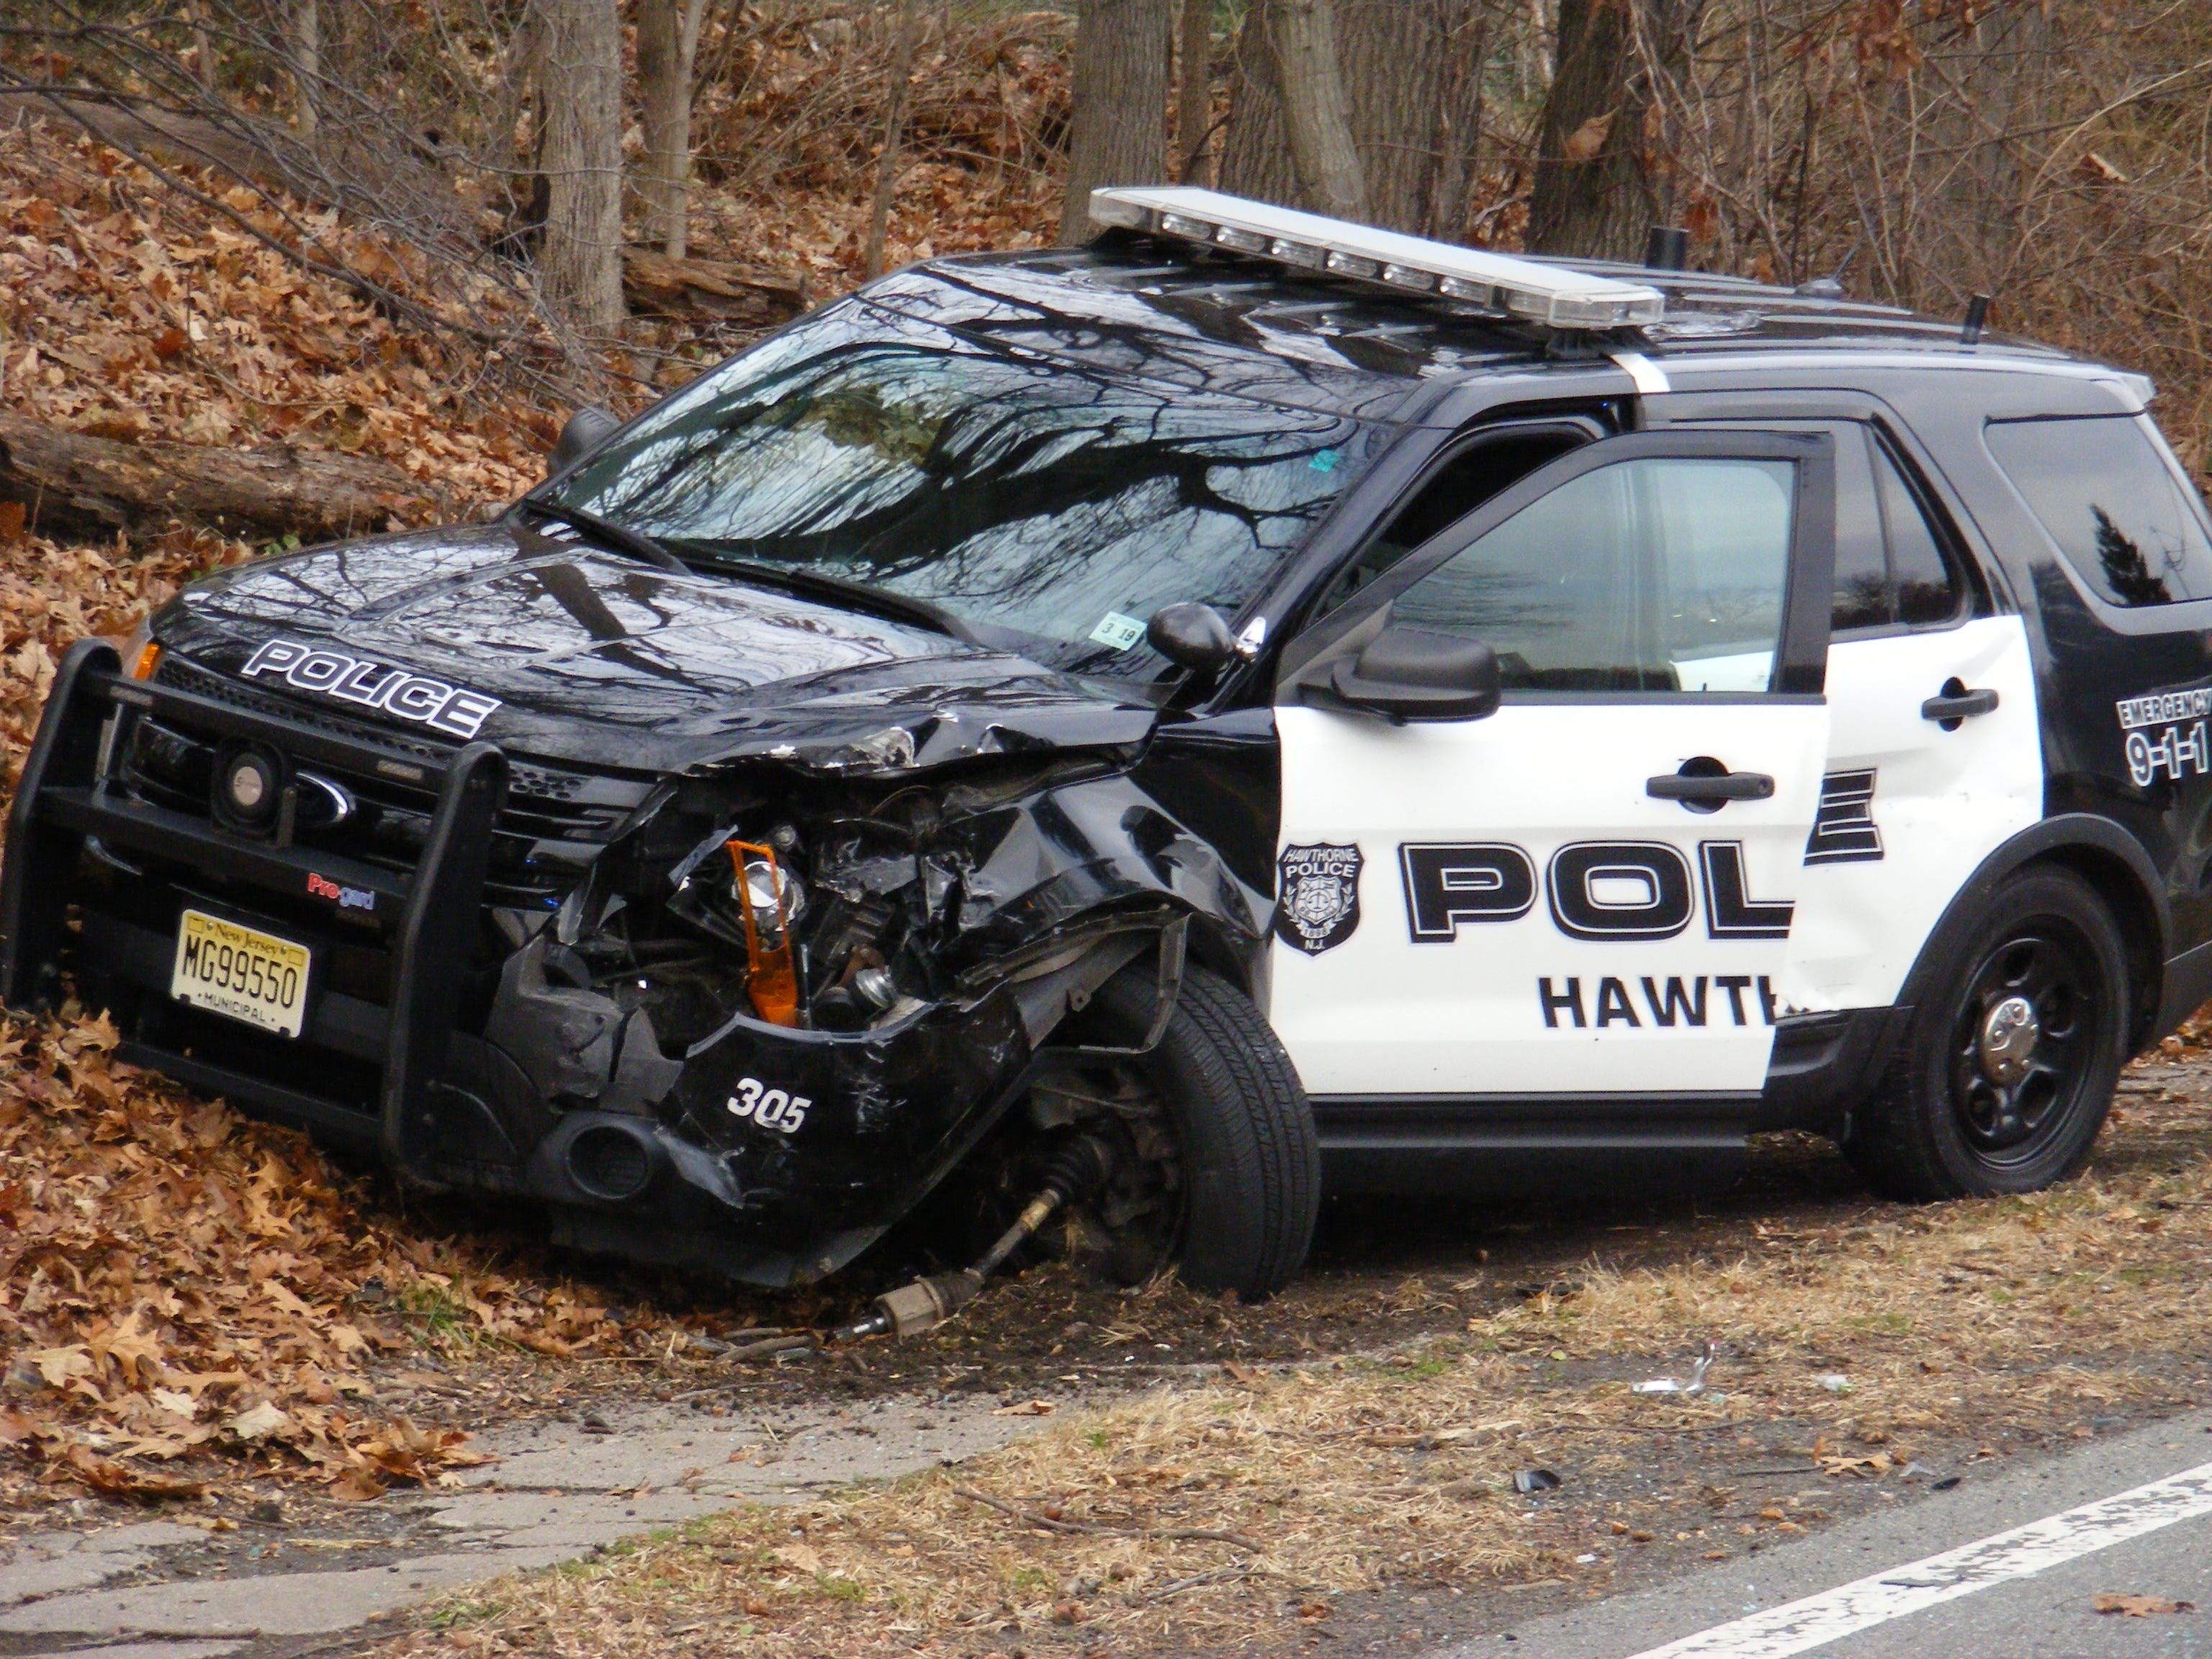 hawthorne police car damaged in accident